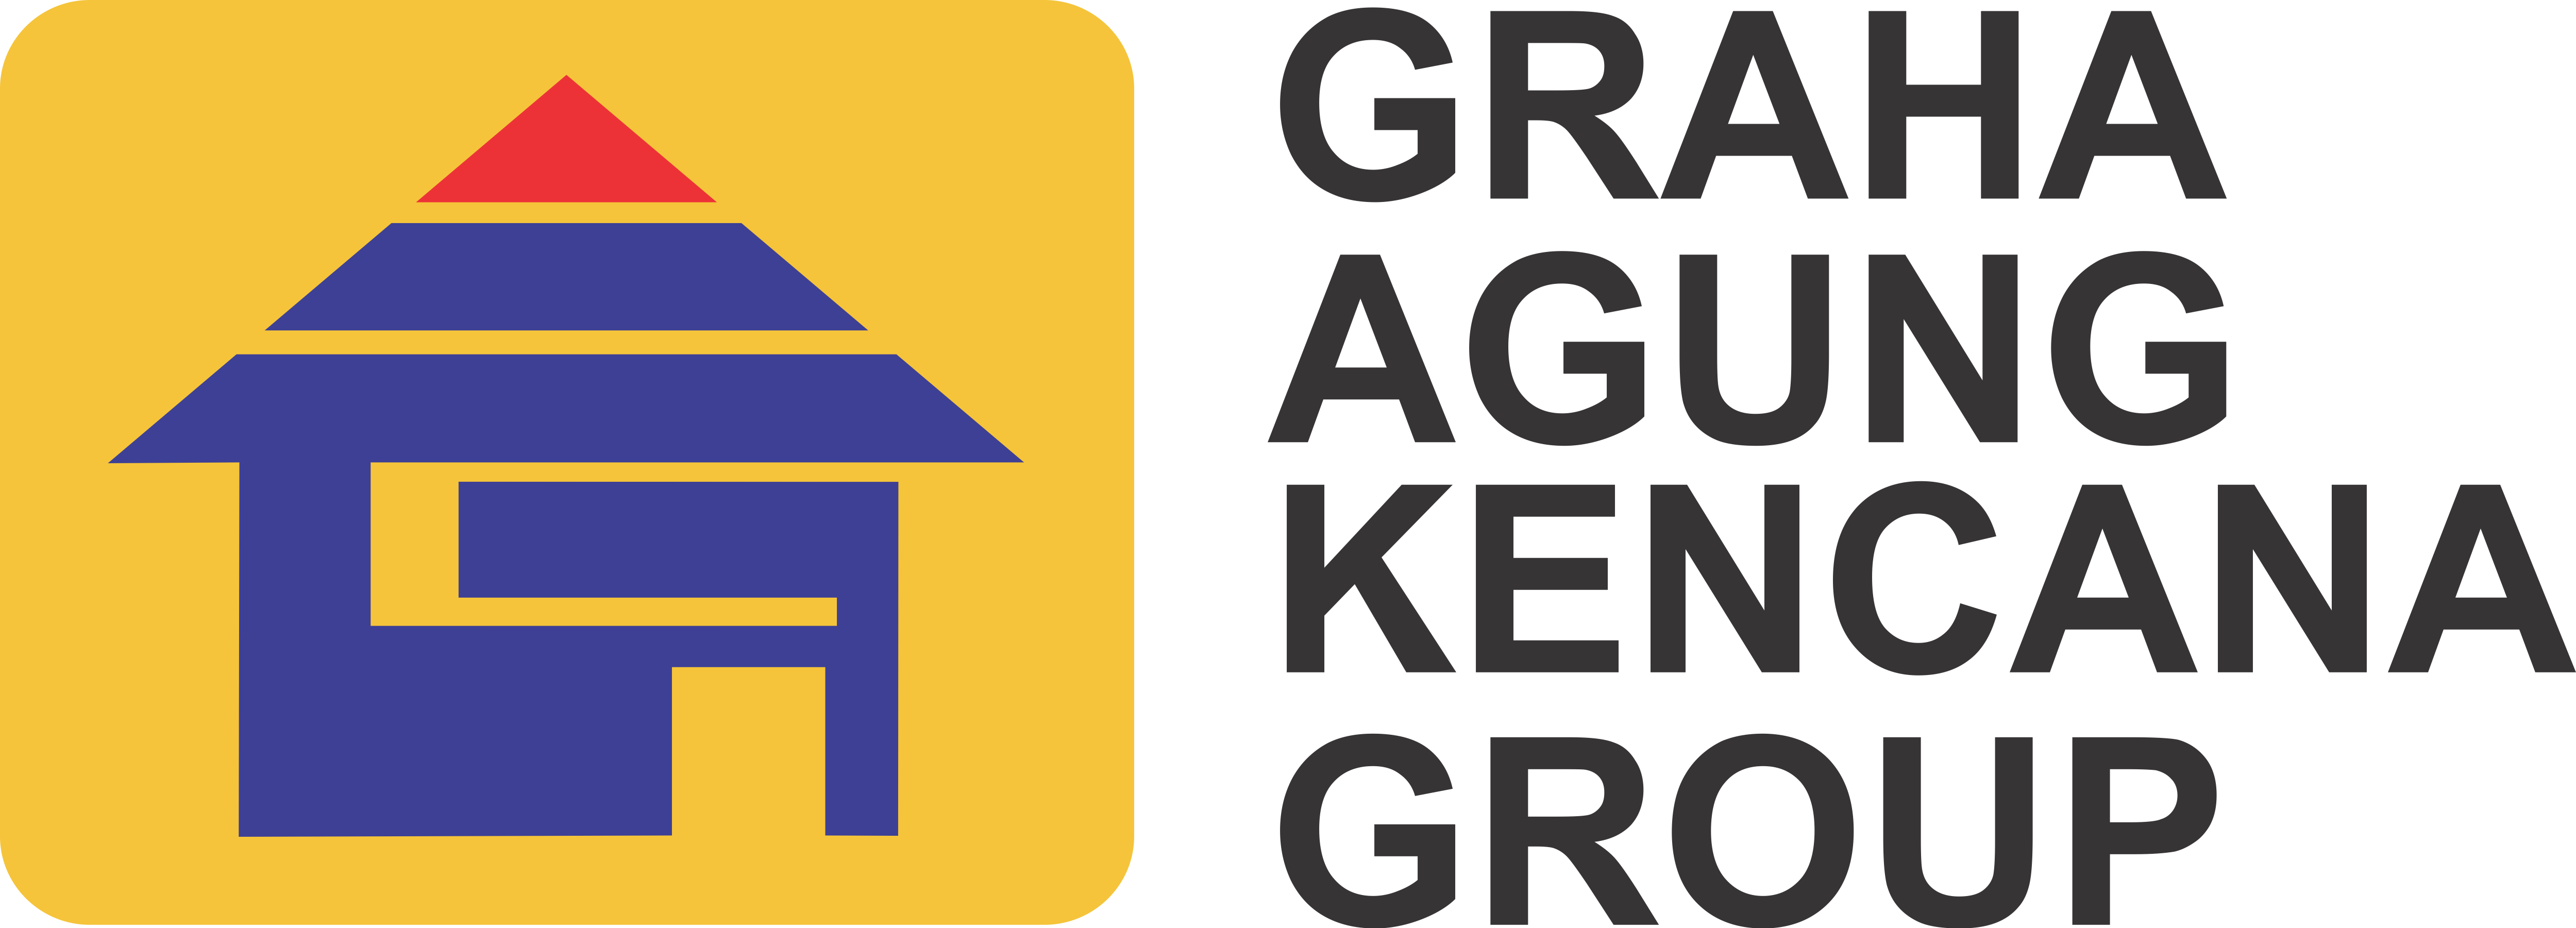 Graha Agung Kencana Group